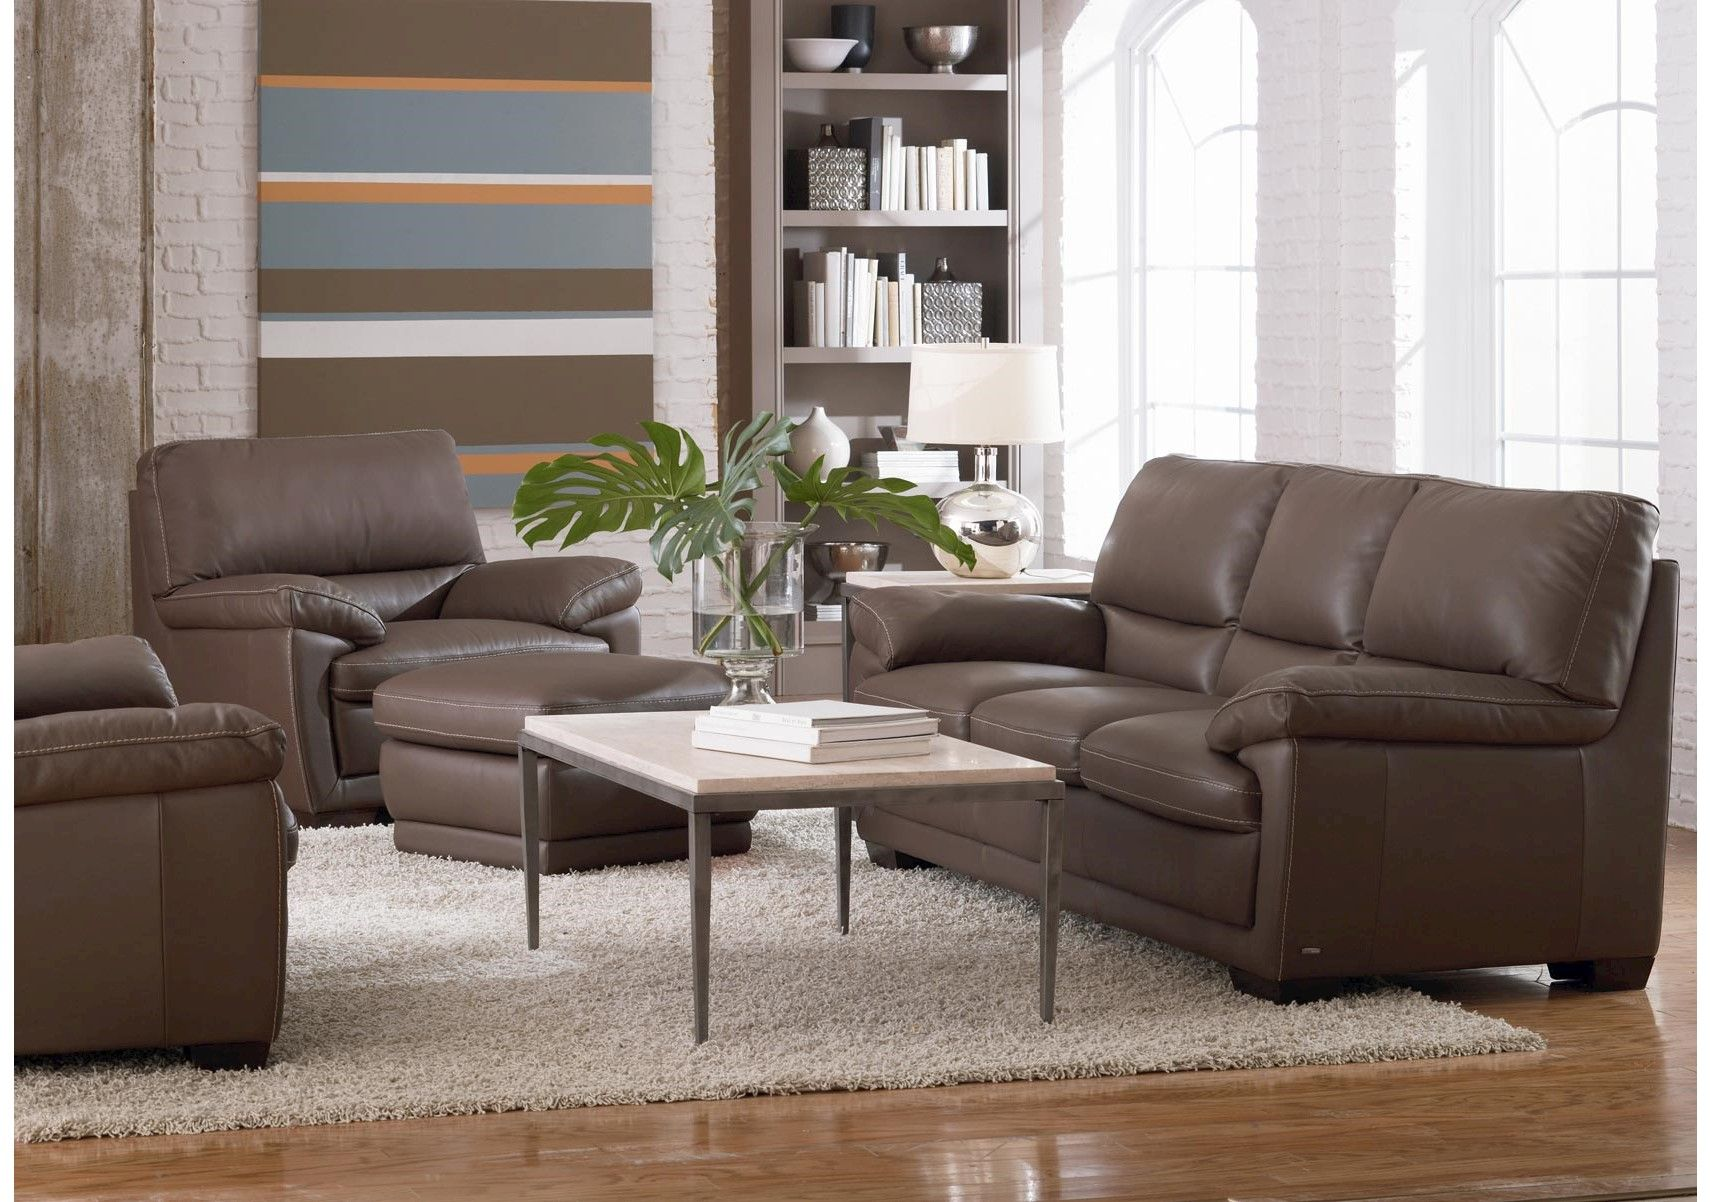 For Denver Leather Sofa Dark Taupe And Other Living Room Sofas At Star Furniture Tx Sleek Natuzzi Comes In Mushroom Color